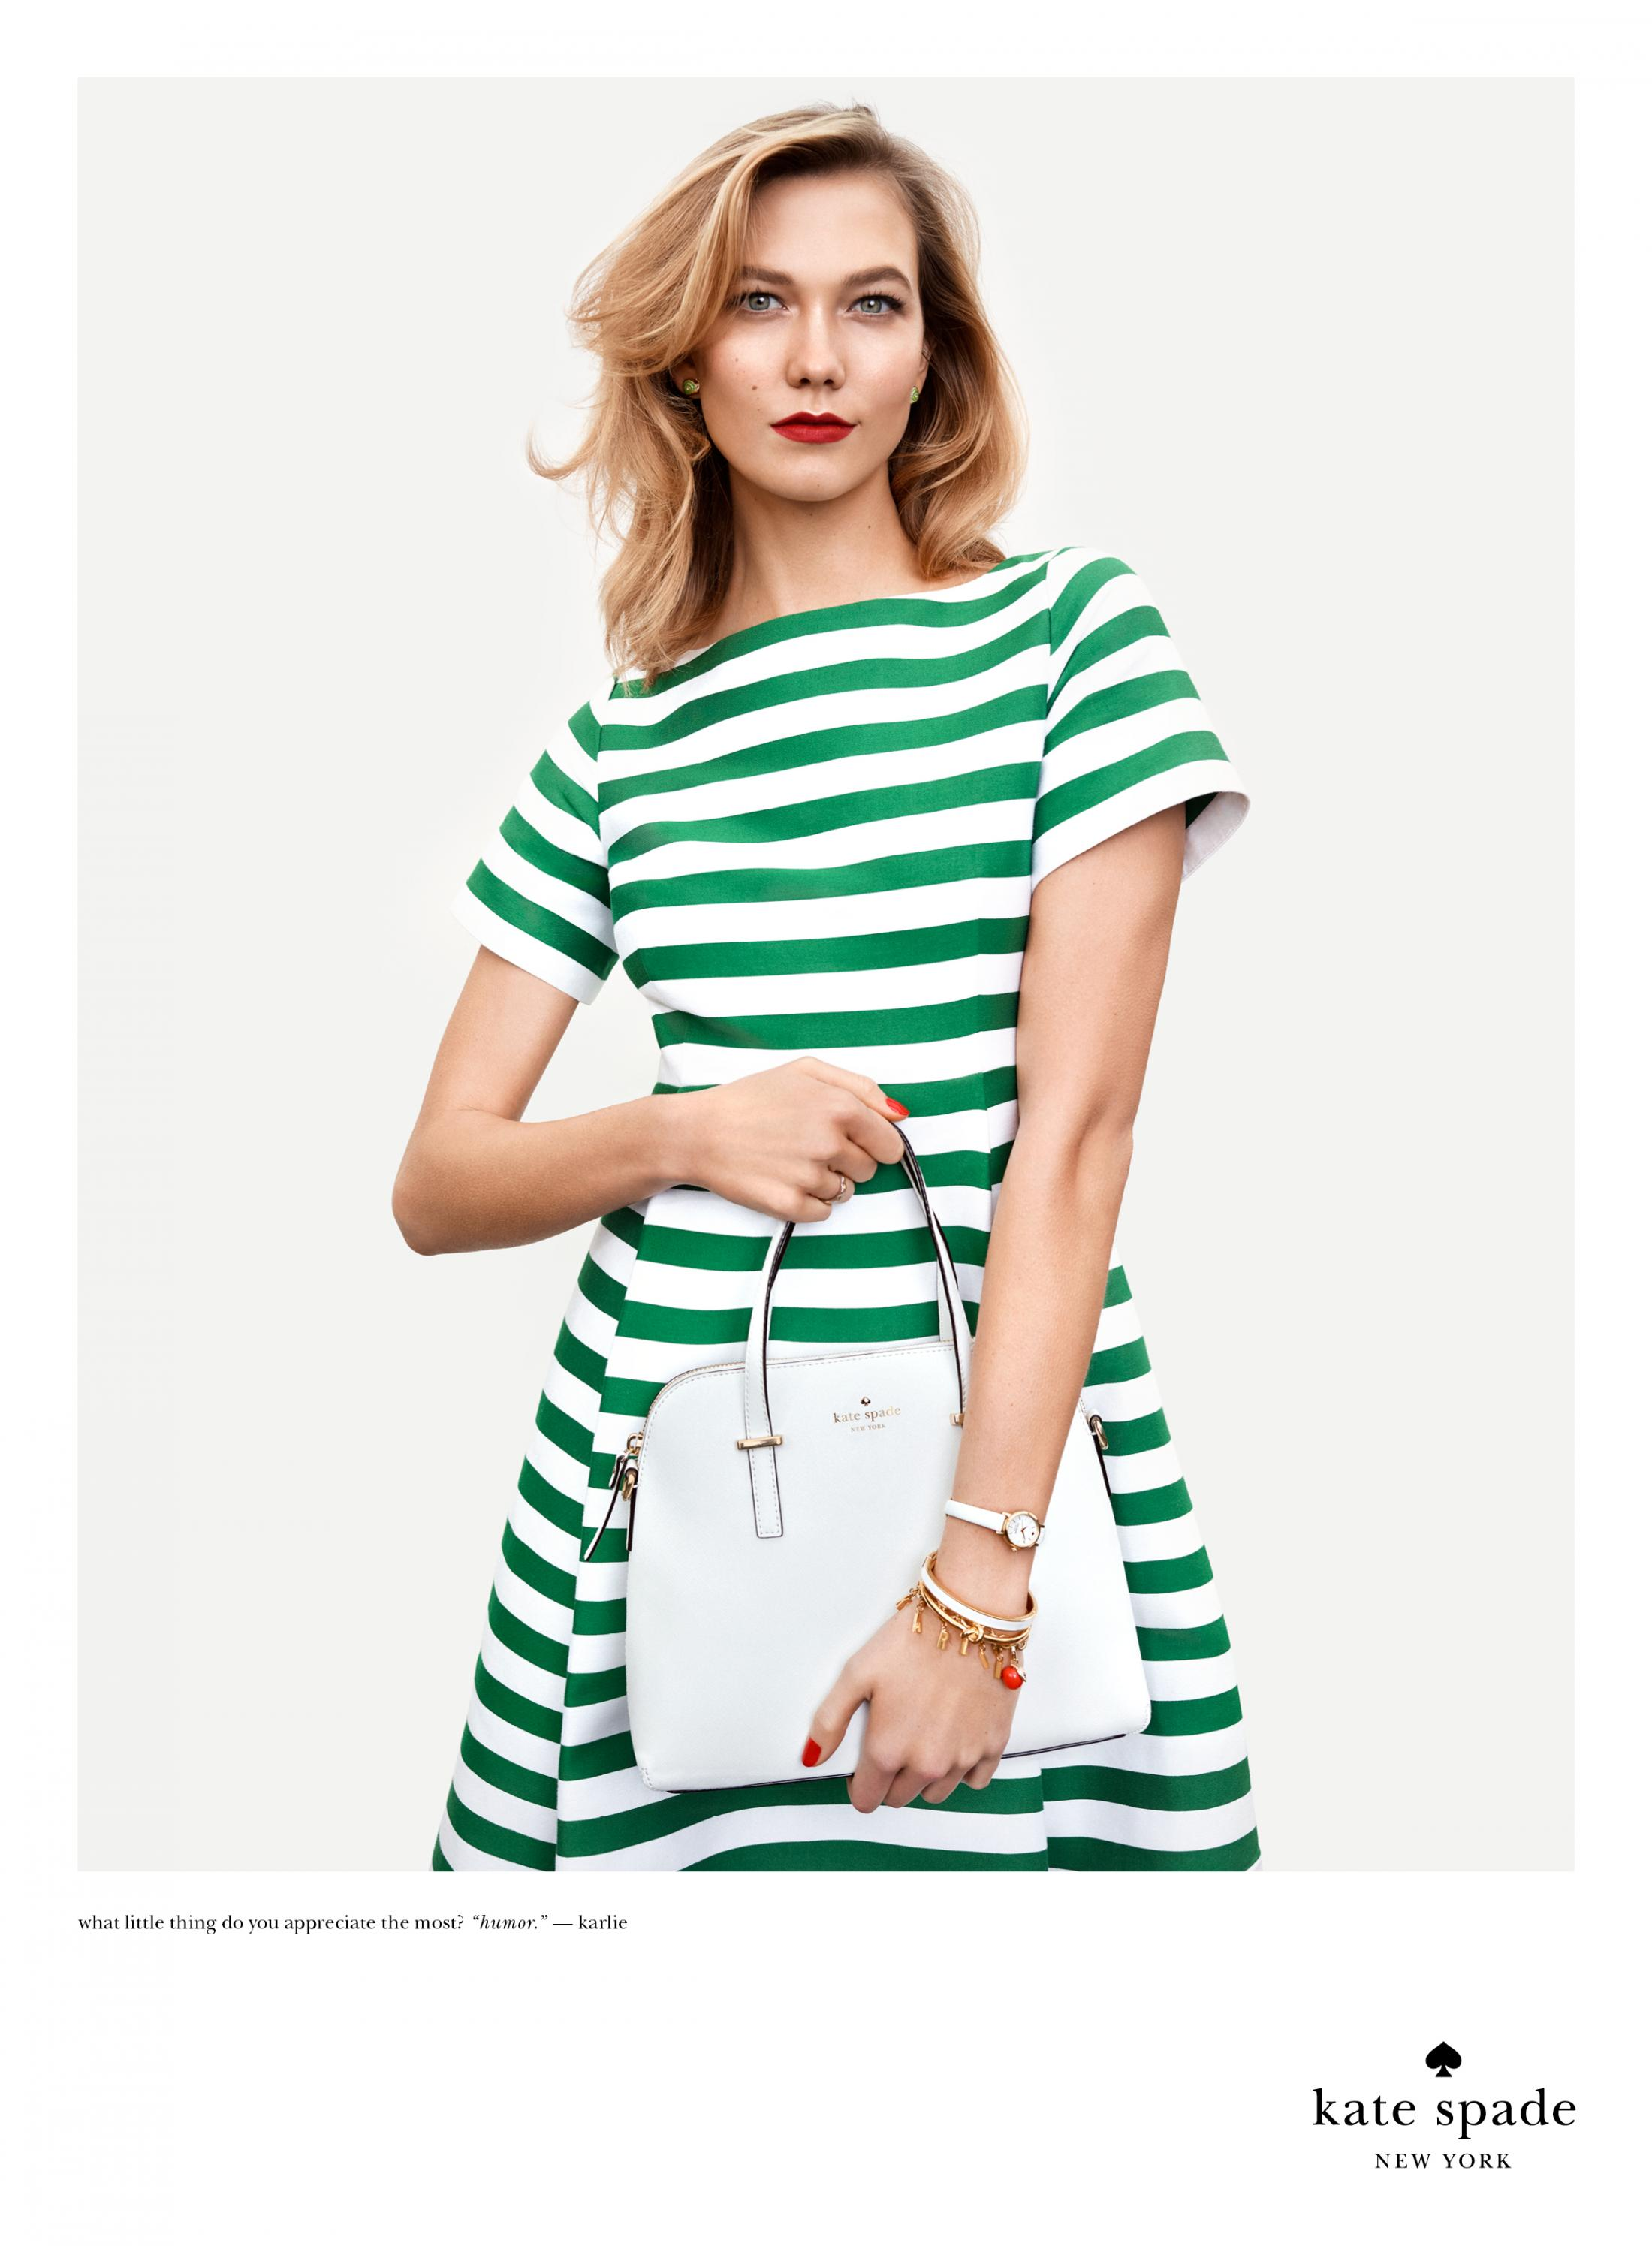 Image Media for kate spade new york spring 2015